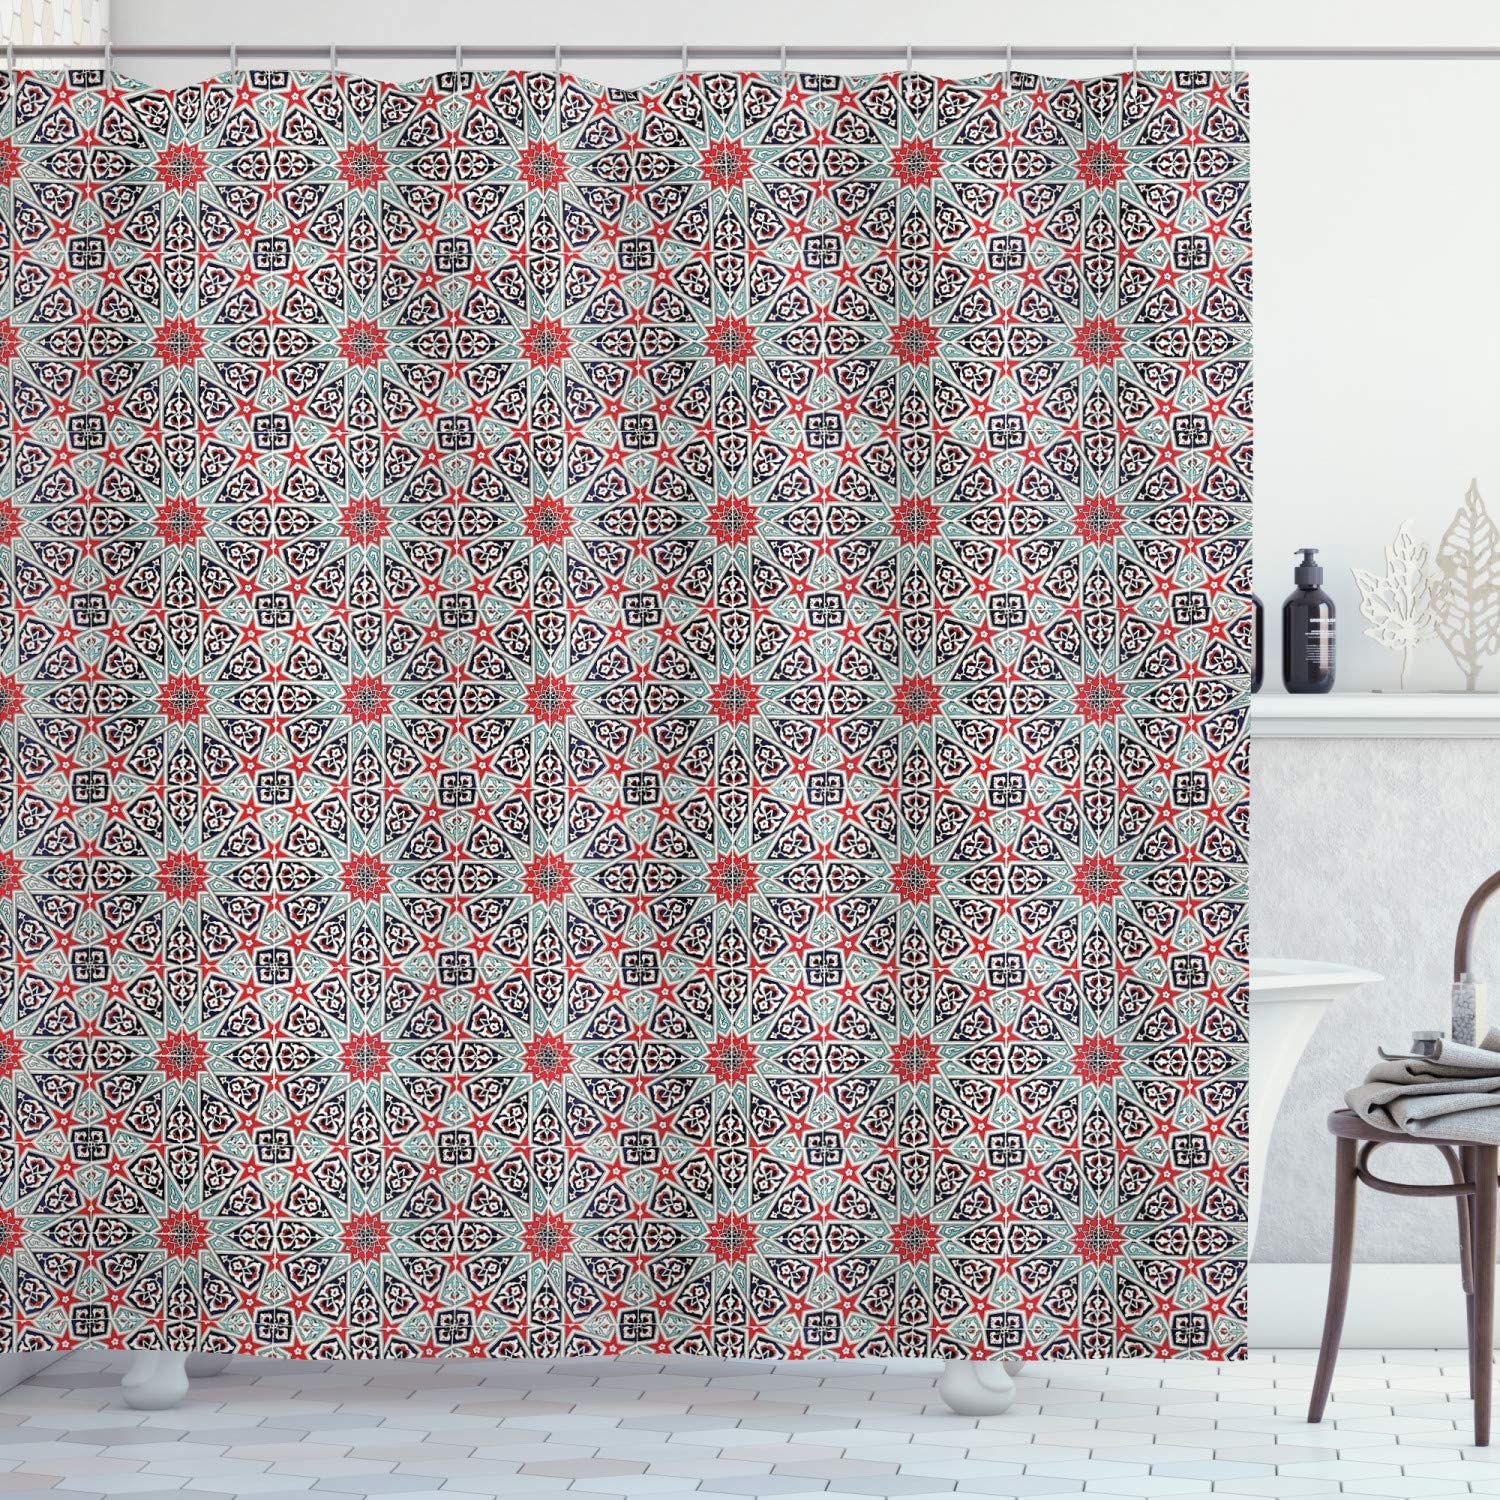 Ambesonne Moroccan Shower Curtain, Ceramic Tile East Pattern Heritage Oriental Tradition Culture Ornate Print, Cloth Fabric Bathroom Decor Set with Hooks, 70